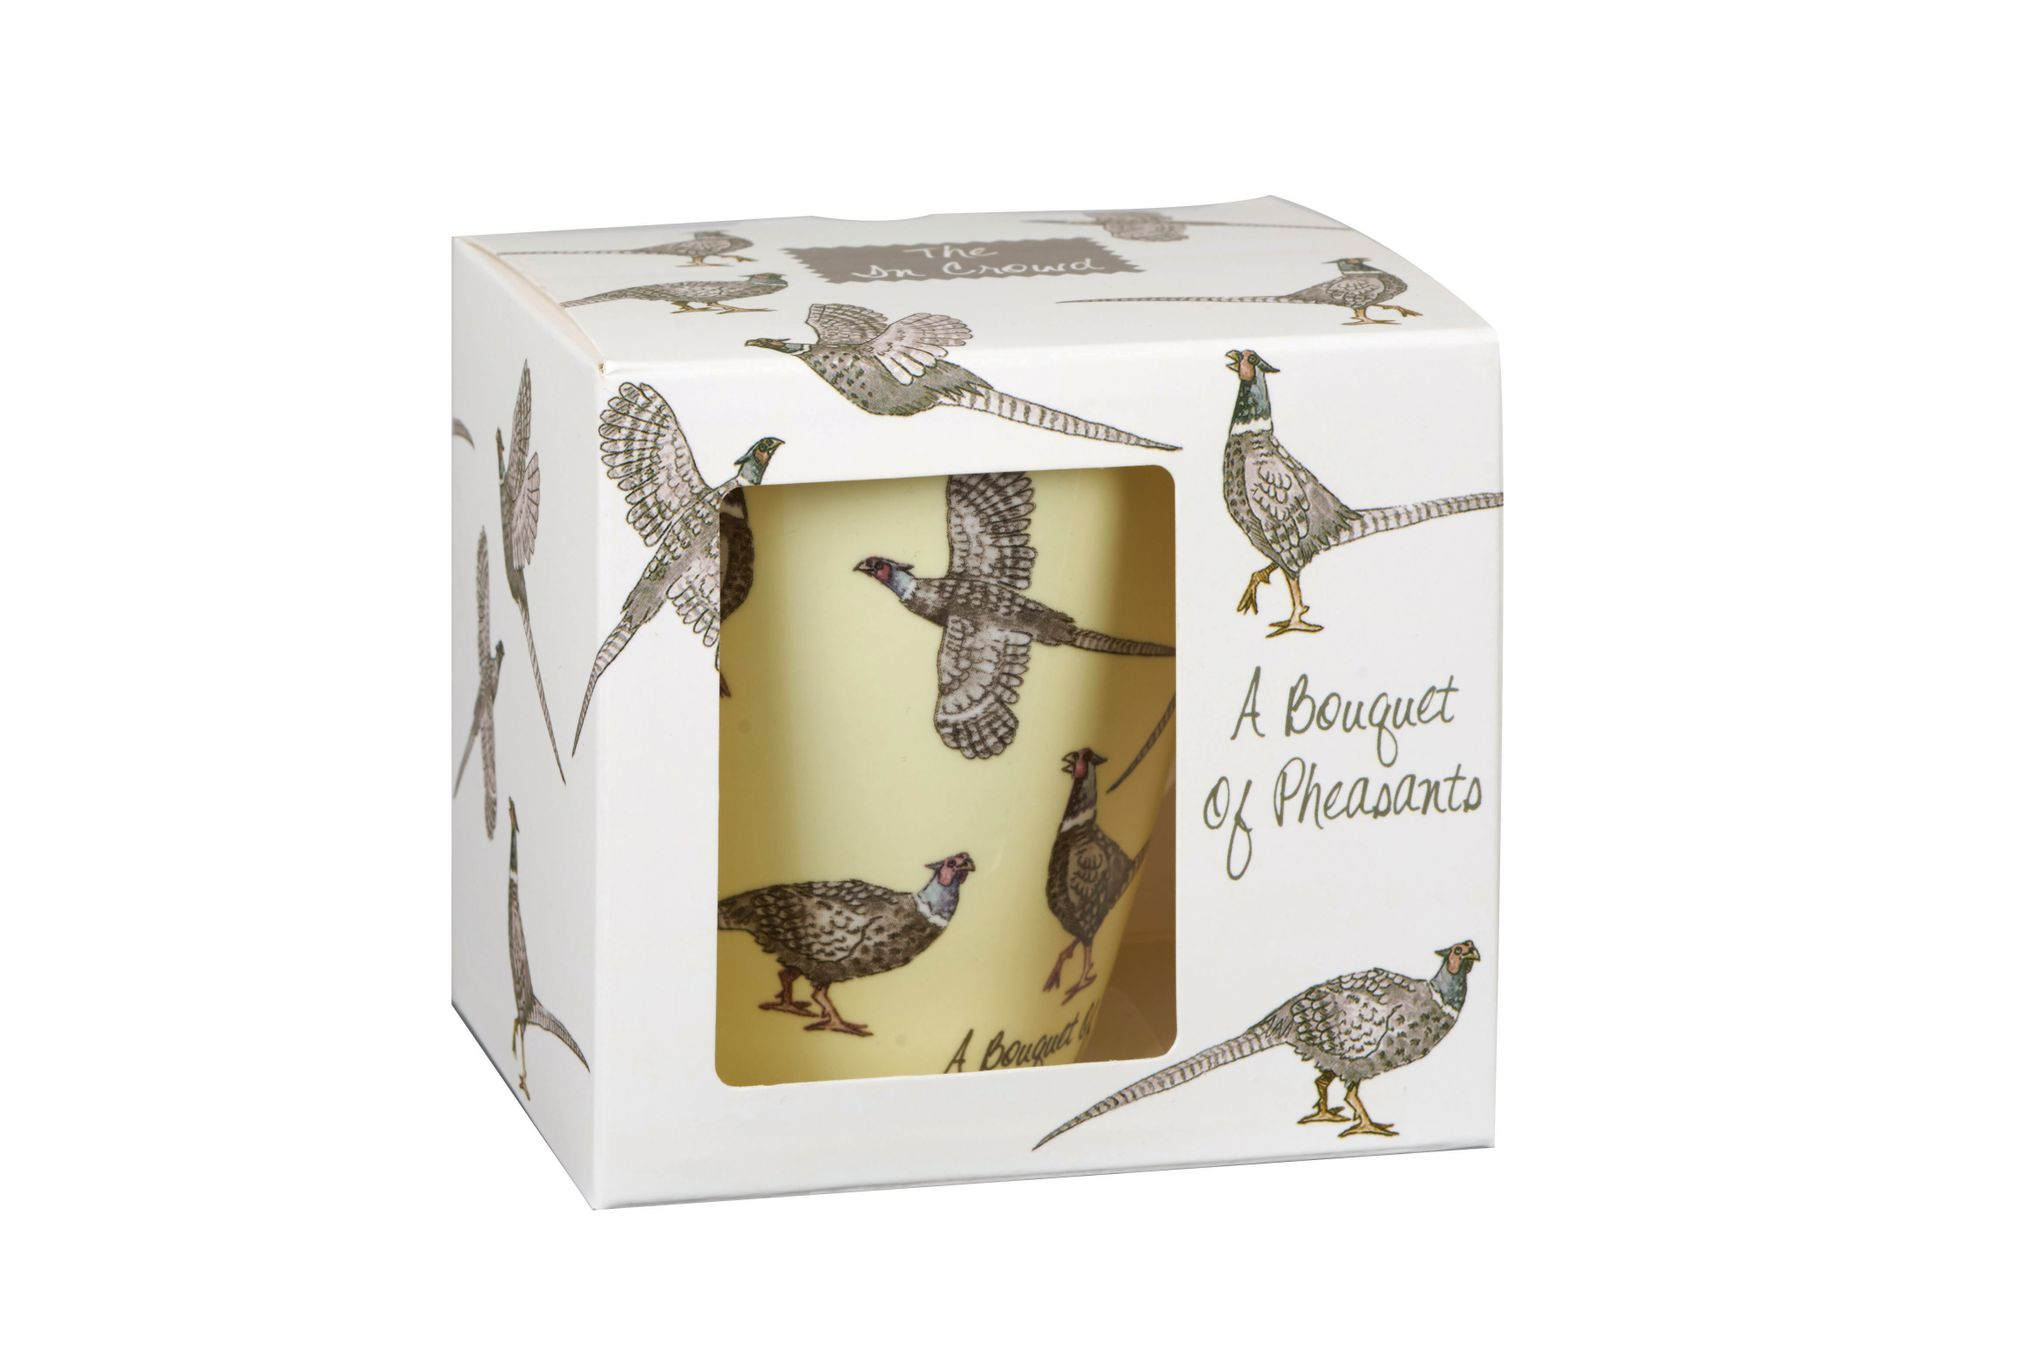 Churchill The In Crowd Mug Pheasants Gift Box 360ml thumb 1